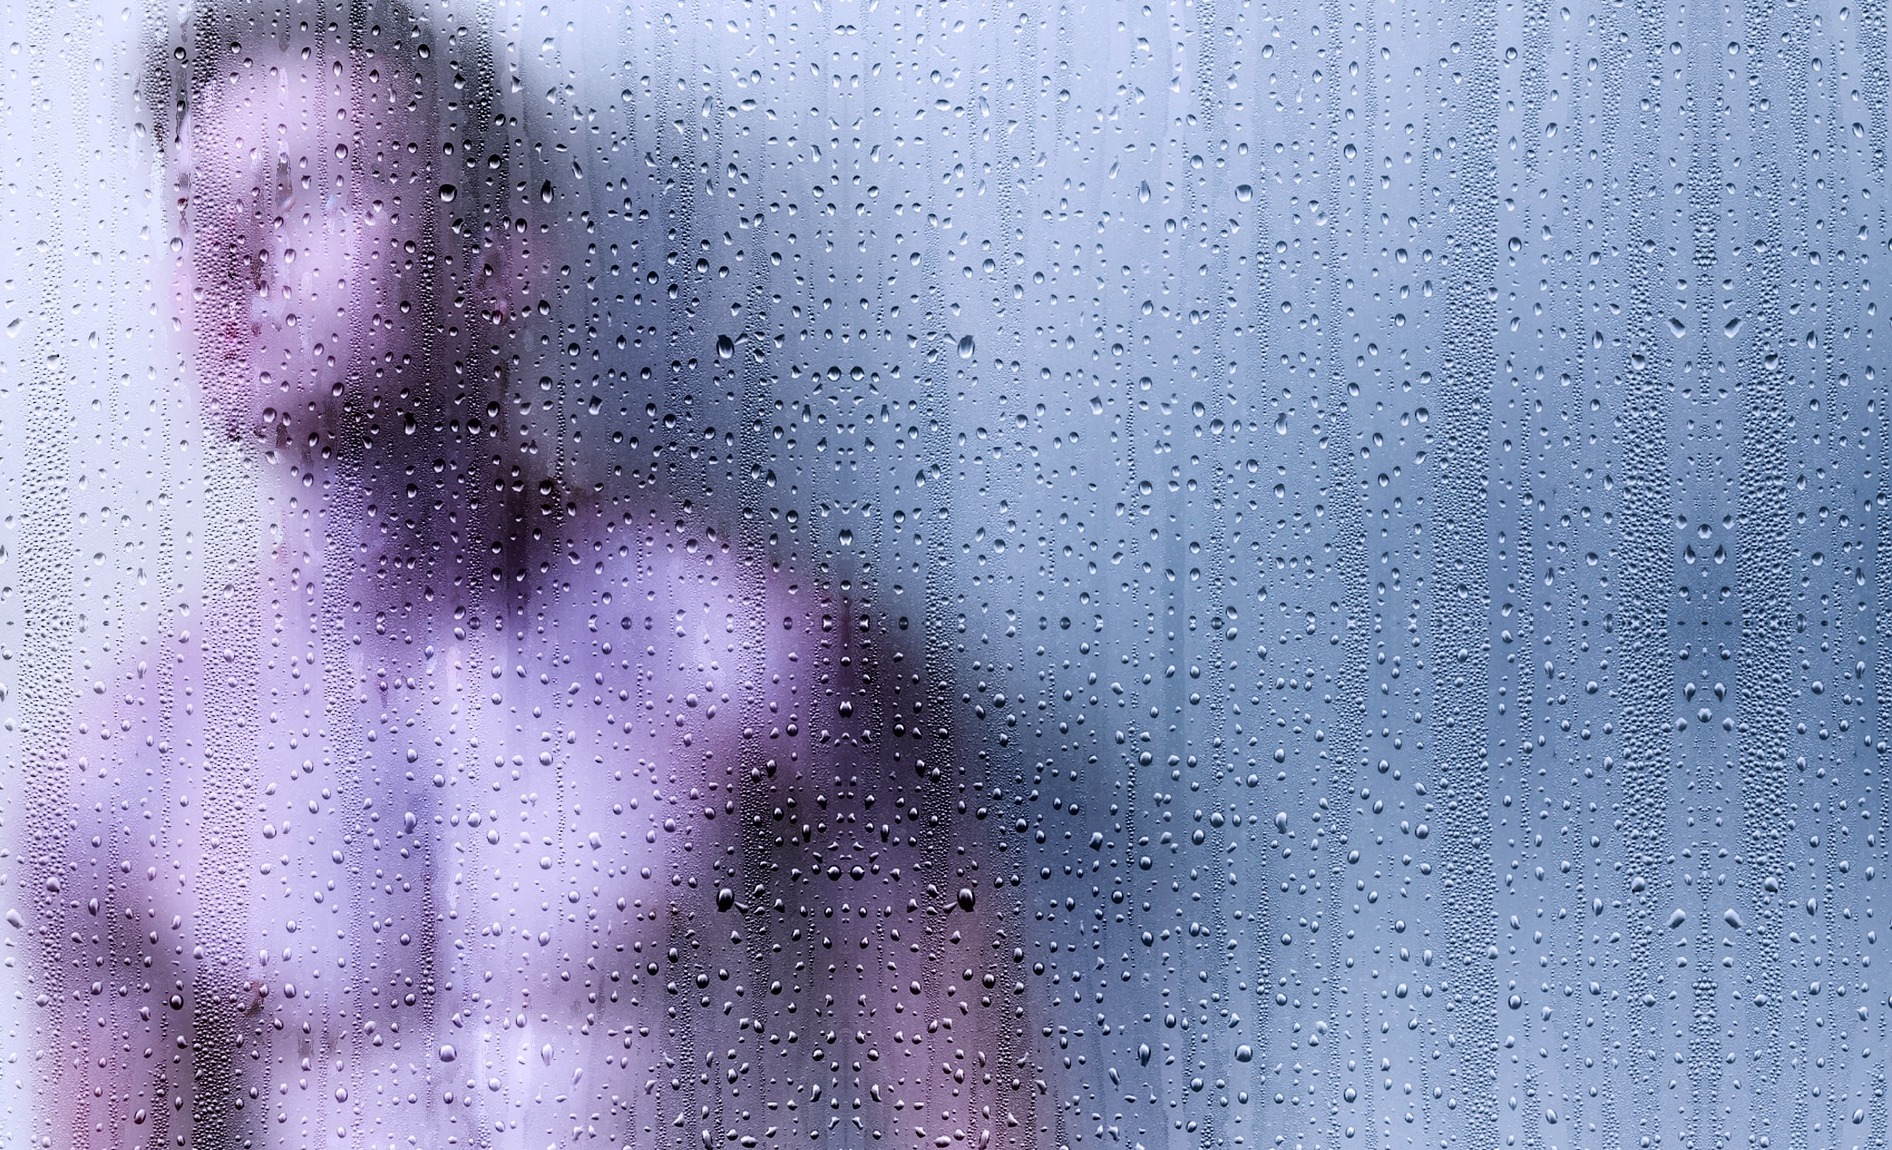 ideas in the shower